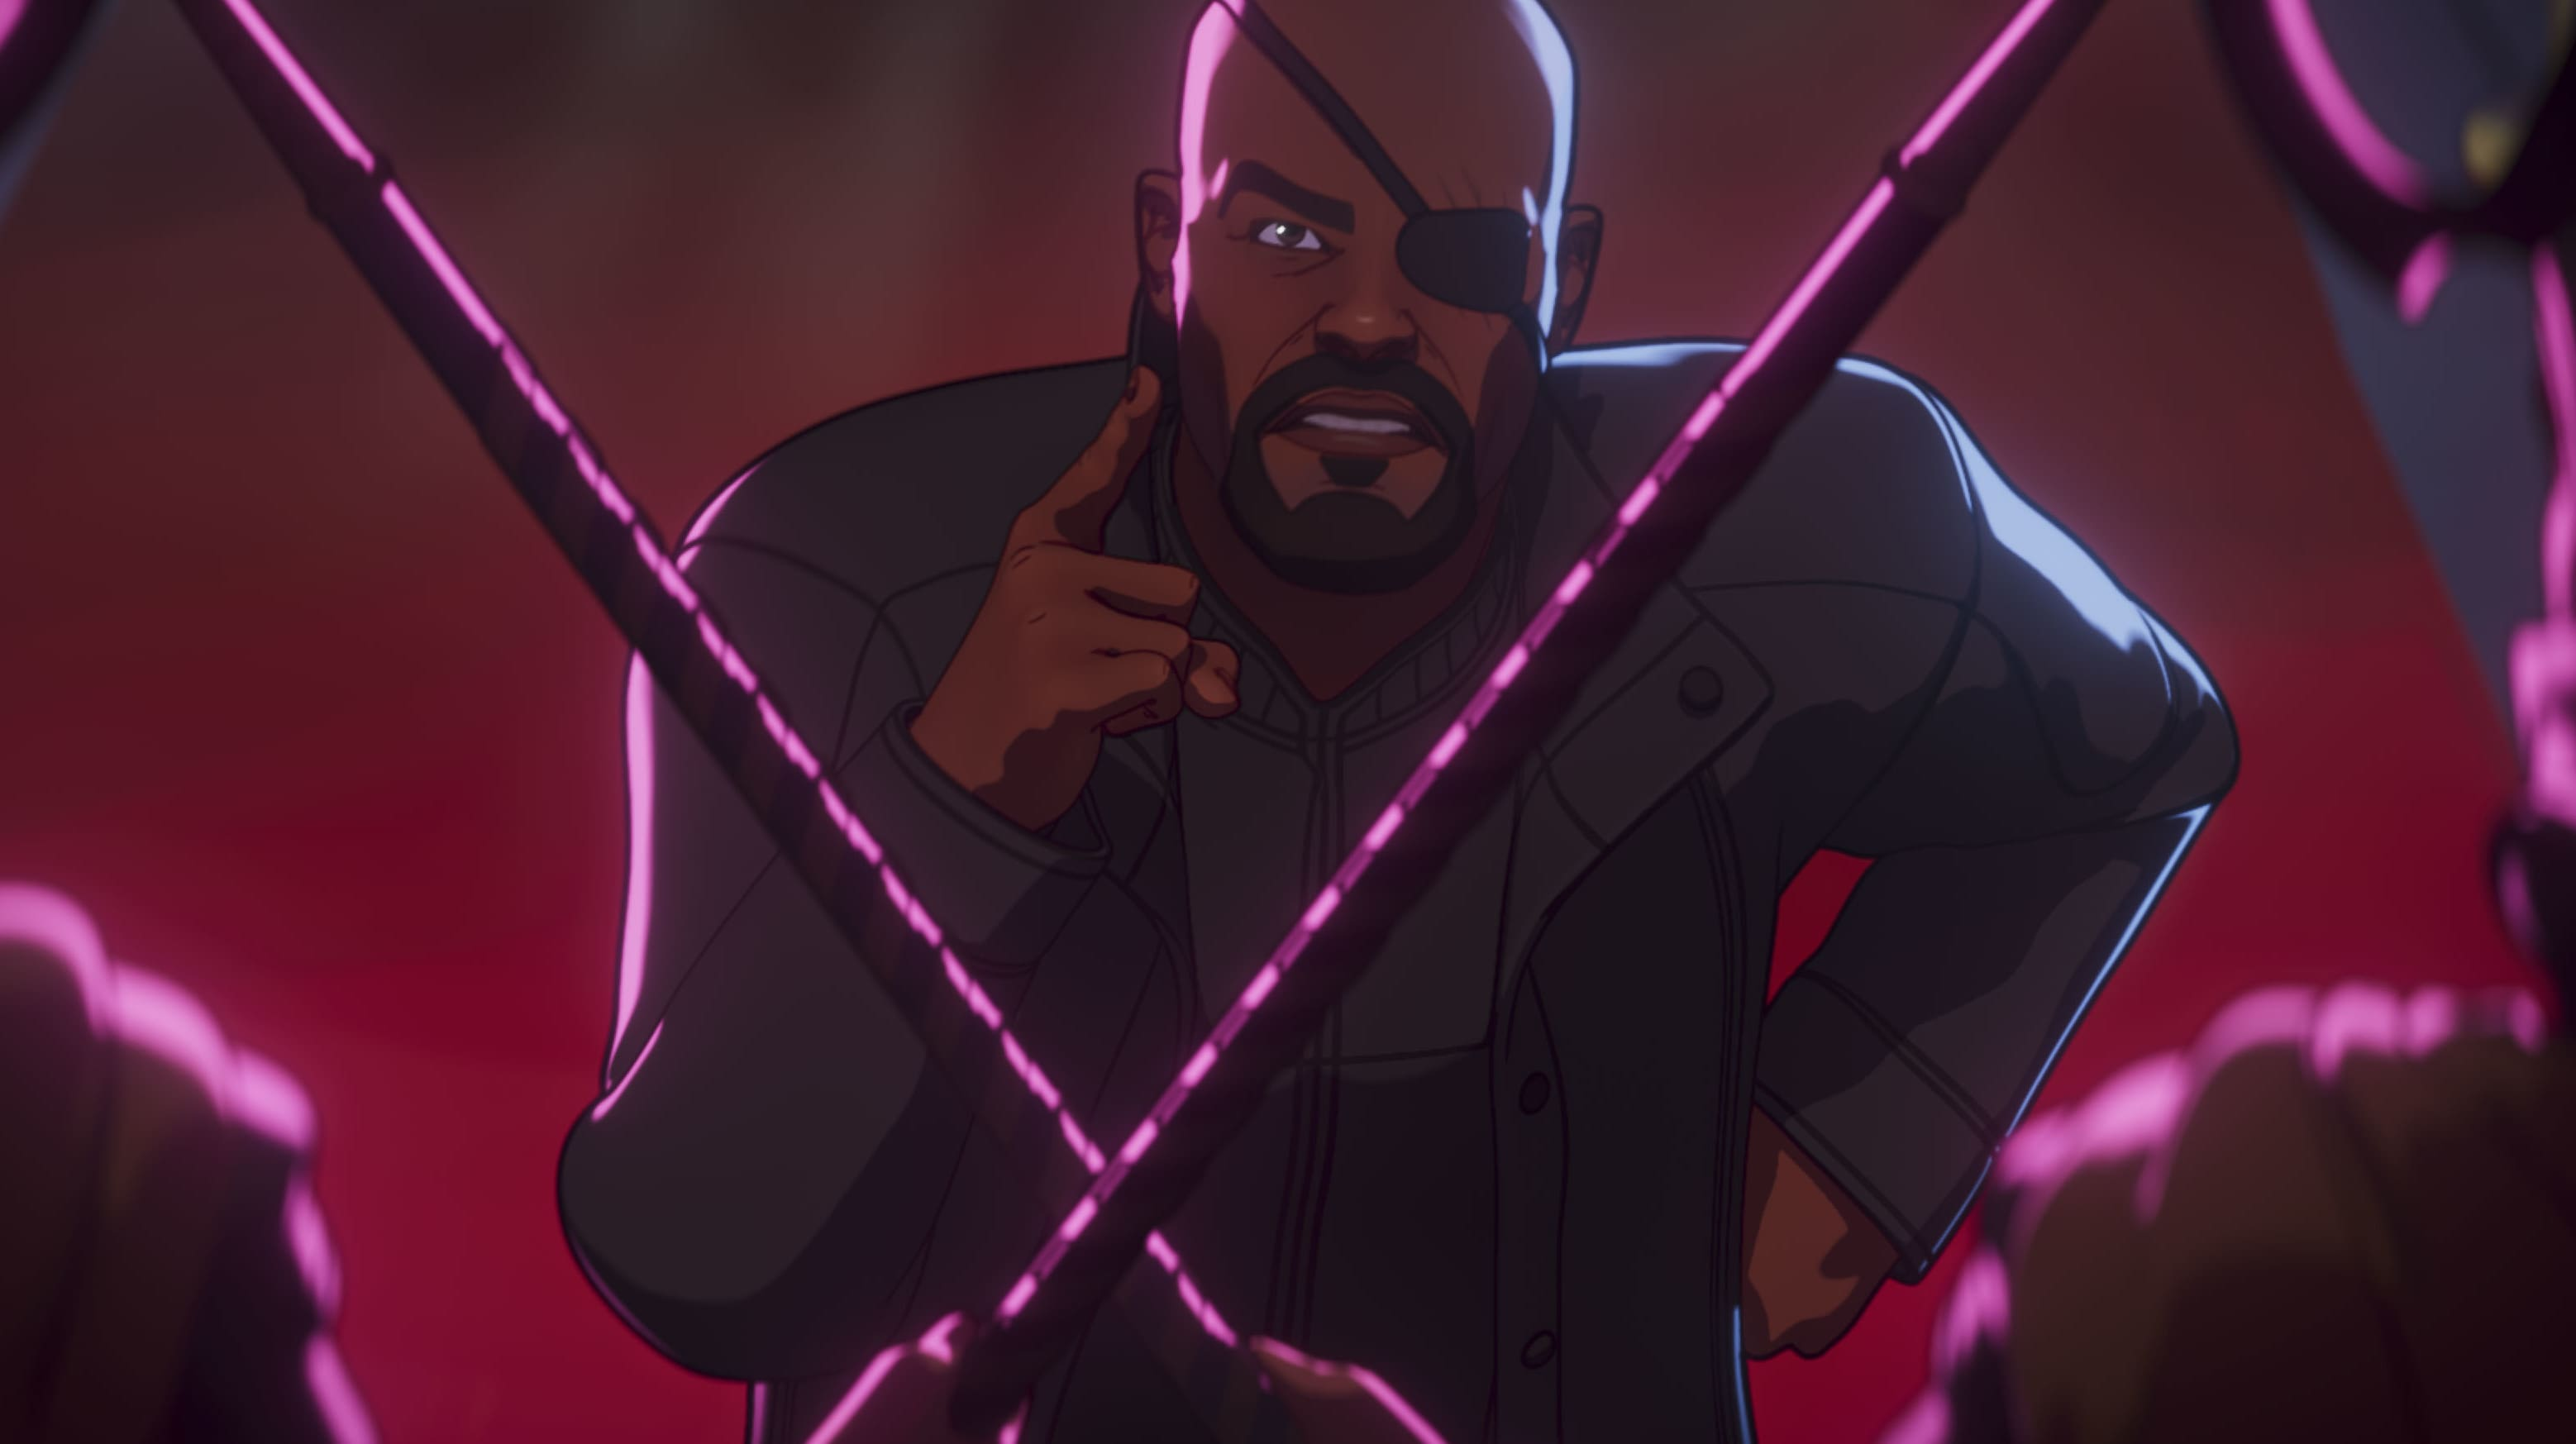 Nick Fury in Marvel Studios' WHAT IF…? exclusively on Disney+. ©Marvel Studios 2021. All Rights Reserved.